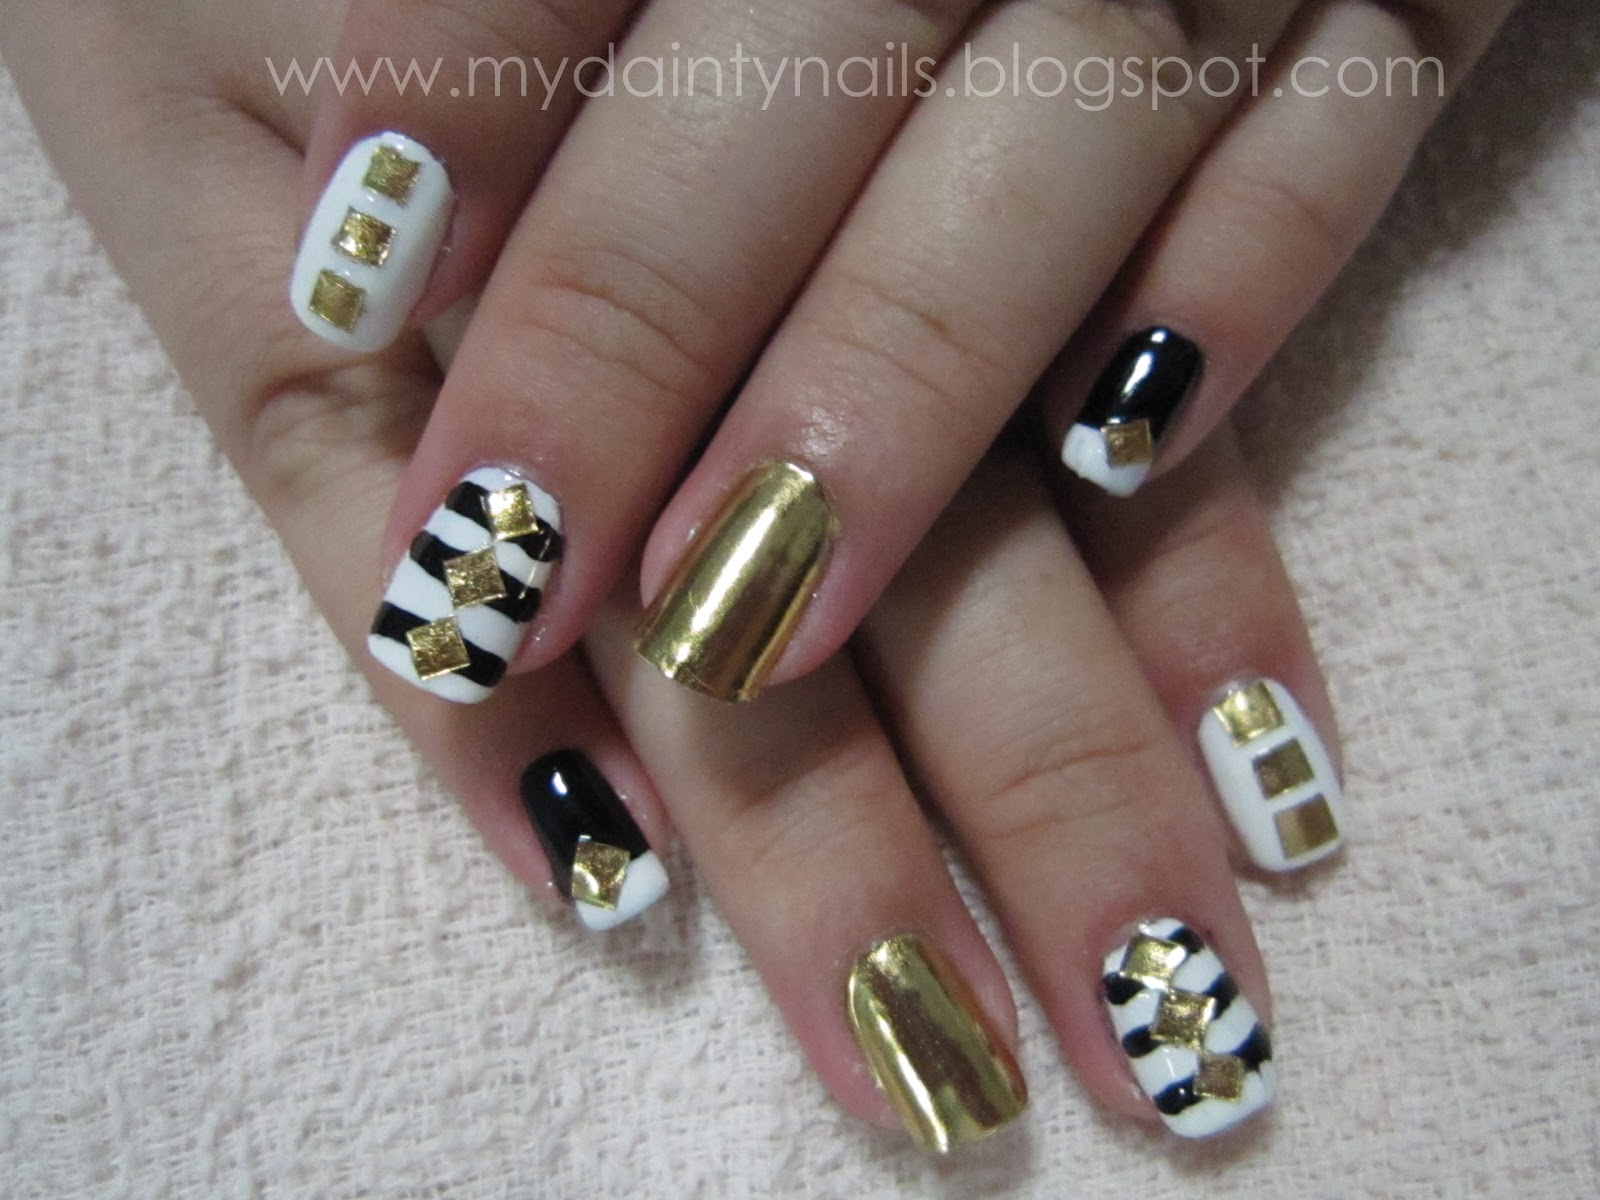 My Dainty Nails: Black. White. Gold.